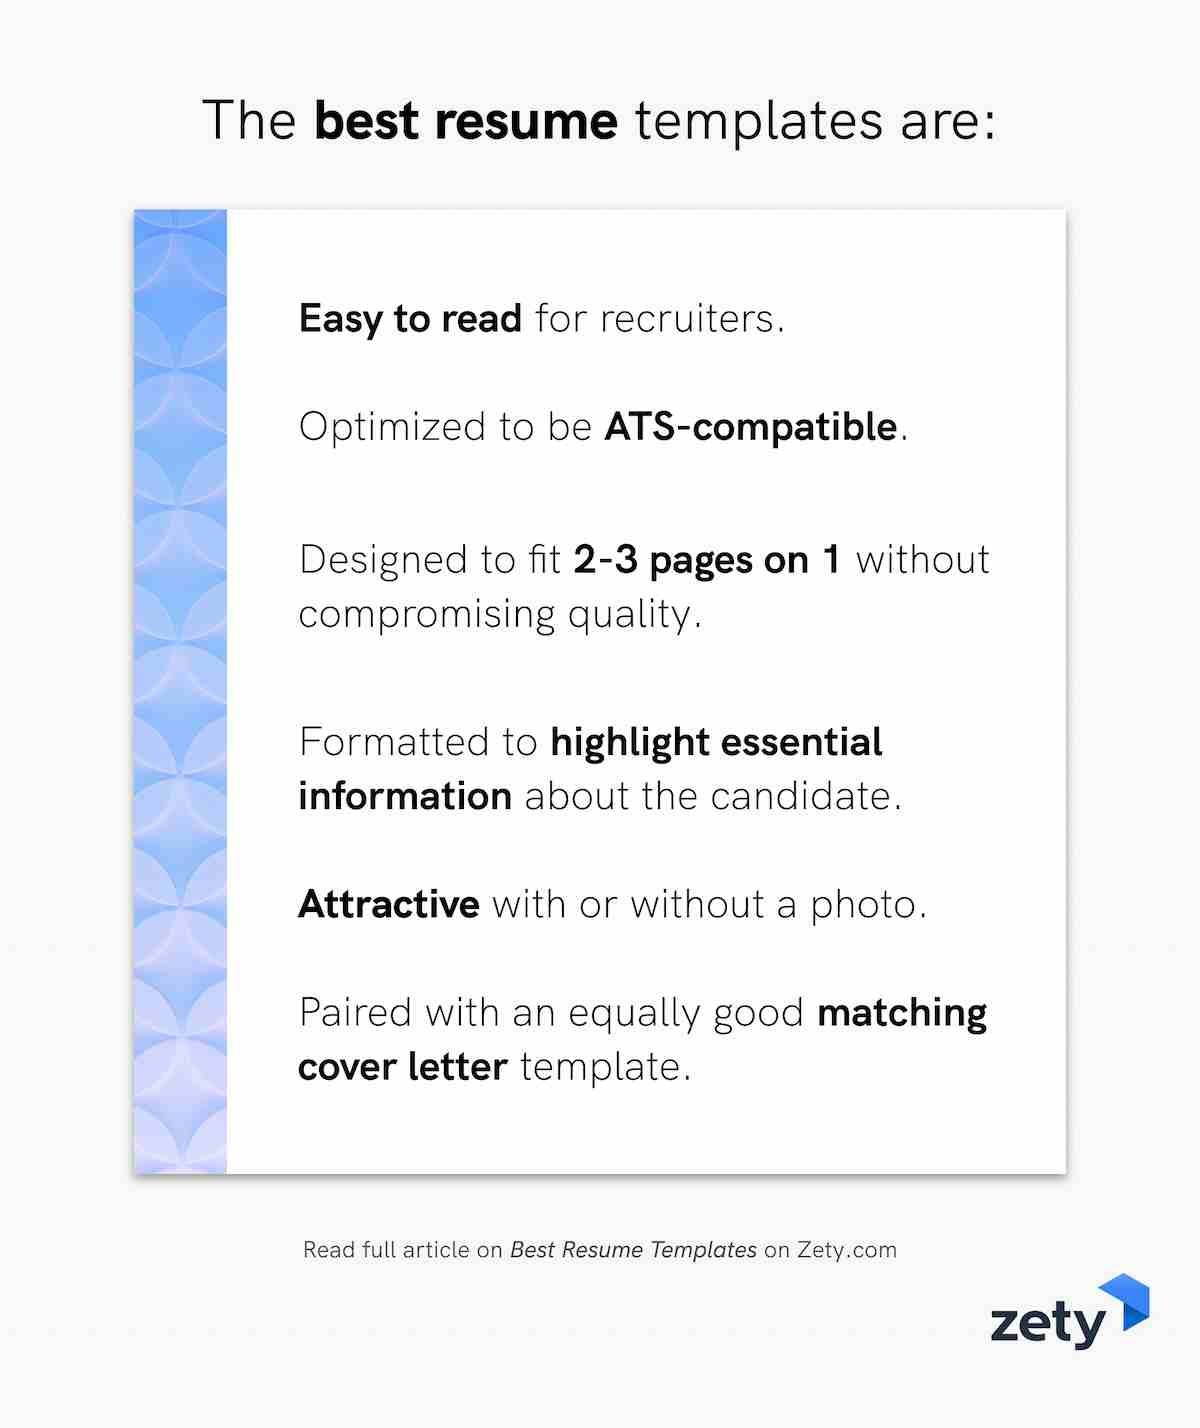 The best resume templates should be